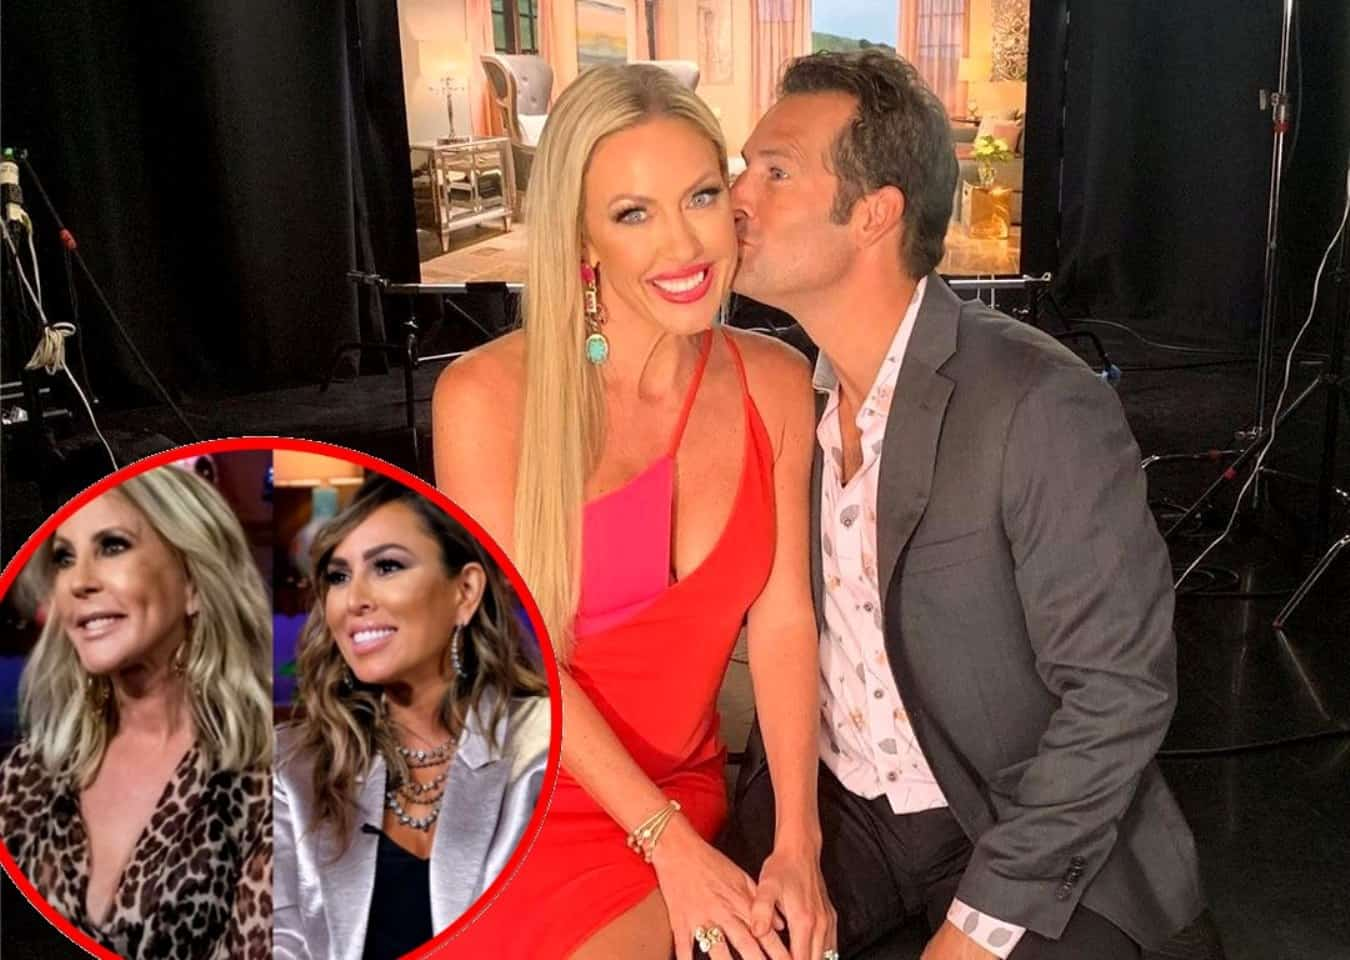 RHOC's Braunwyn Windham Burke Reveals Her Two Rules for Threesomes With Husband Sean and Explains How Kelly Dodd is Involved in Her Feud With Vicki Gunvalson